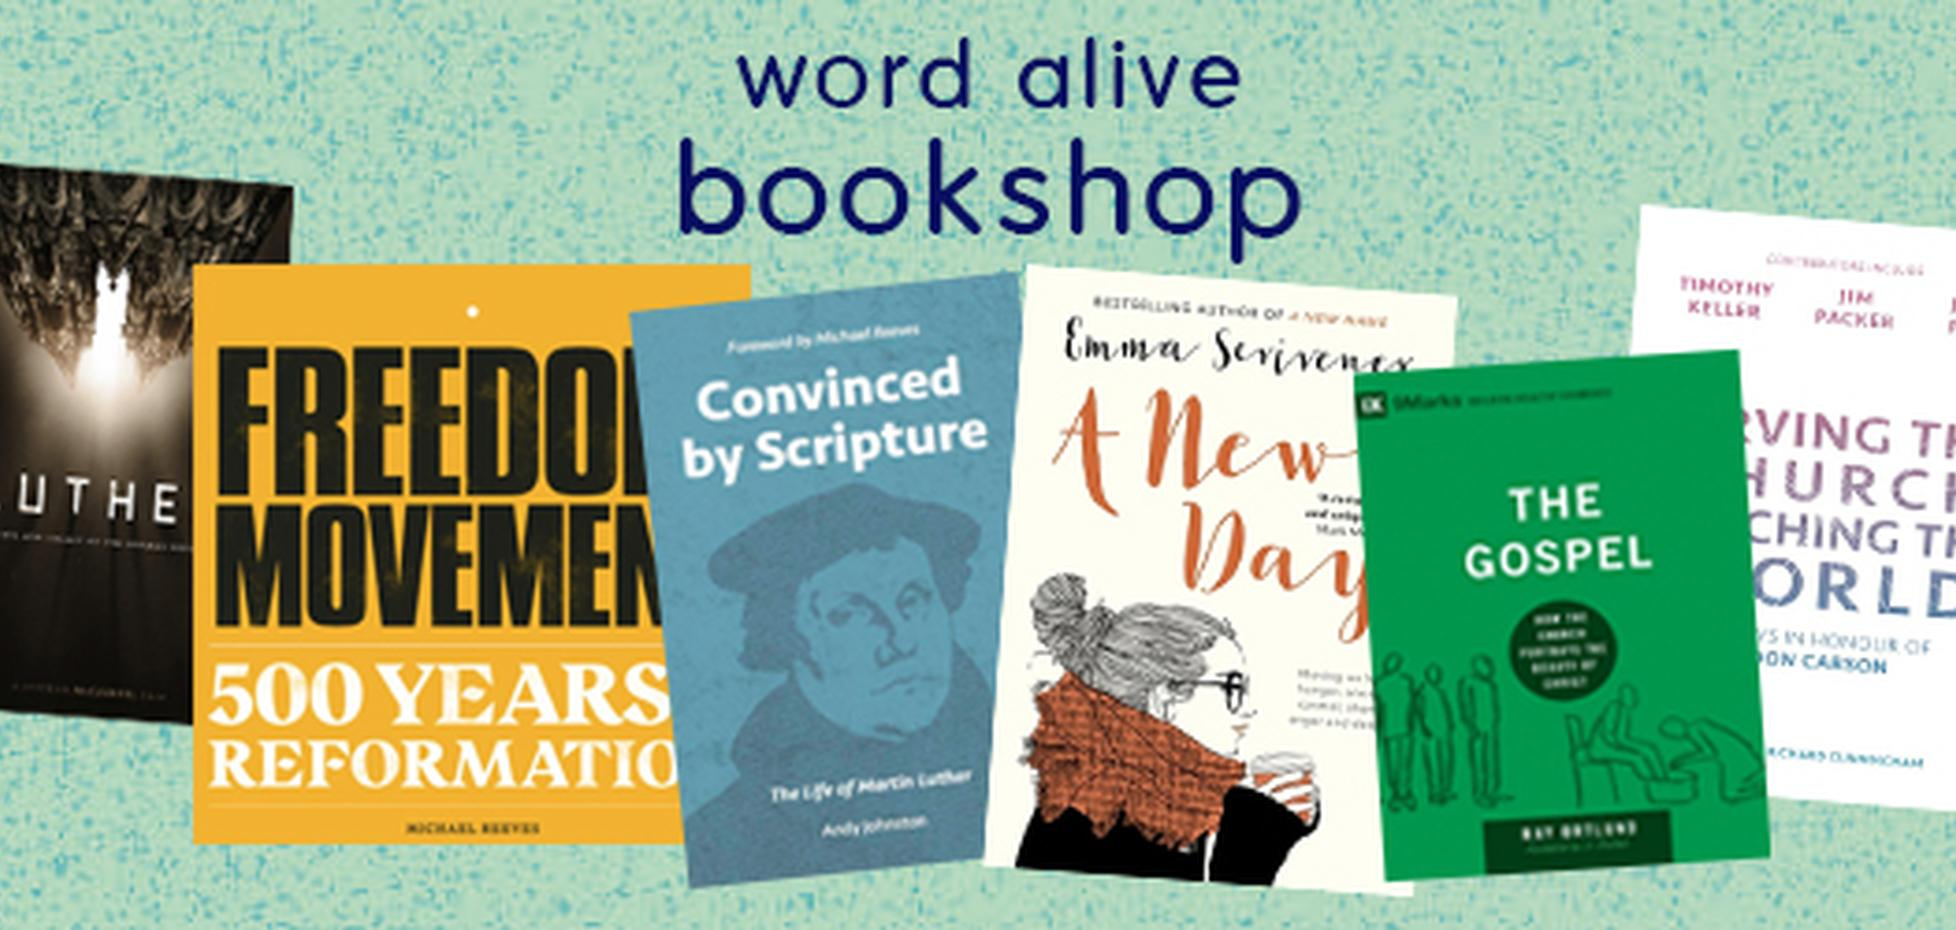 6 Products Being Launched at Word Alive